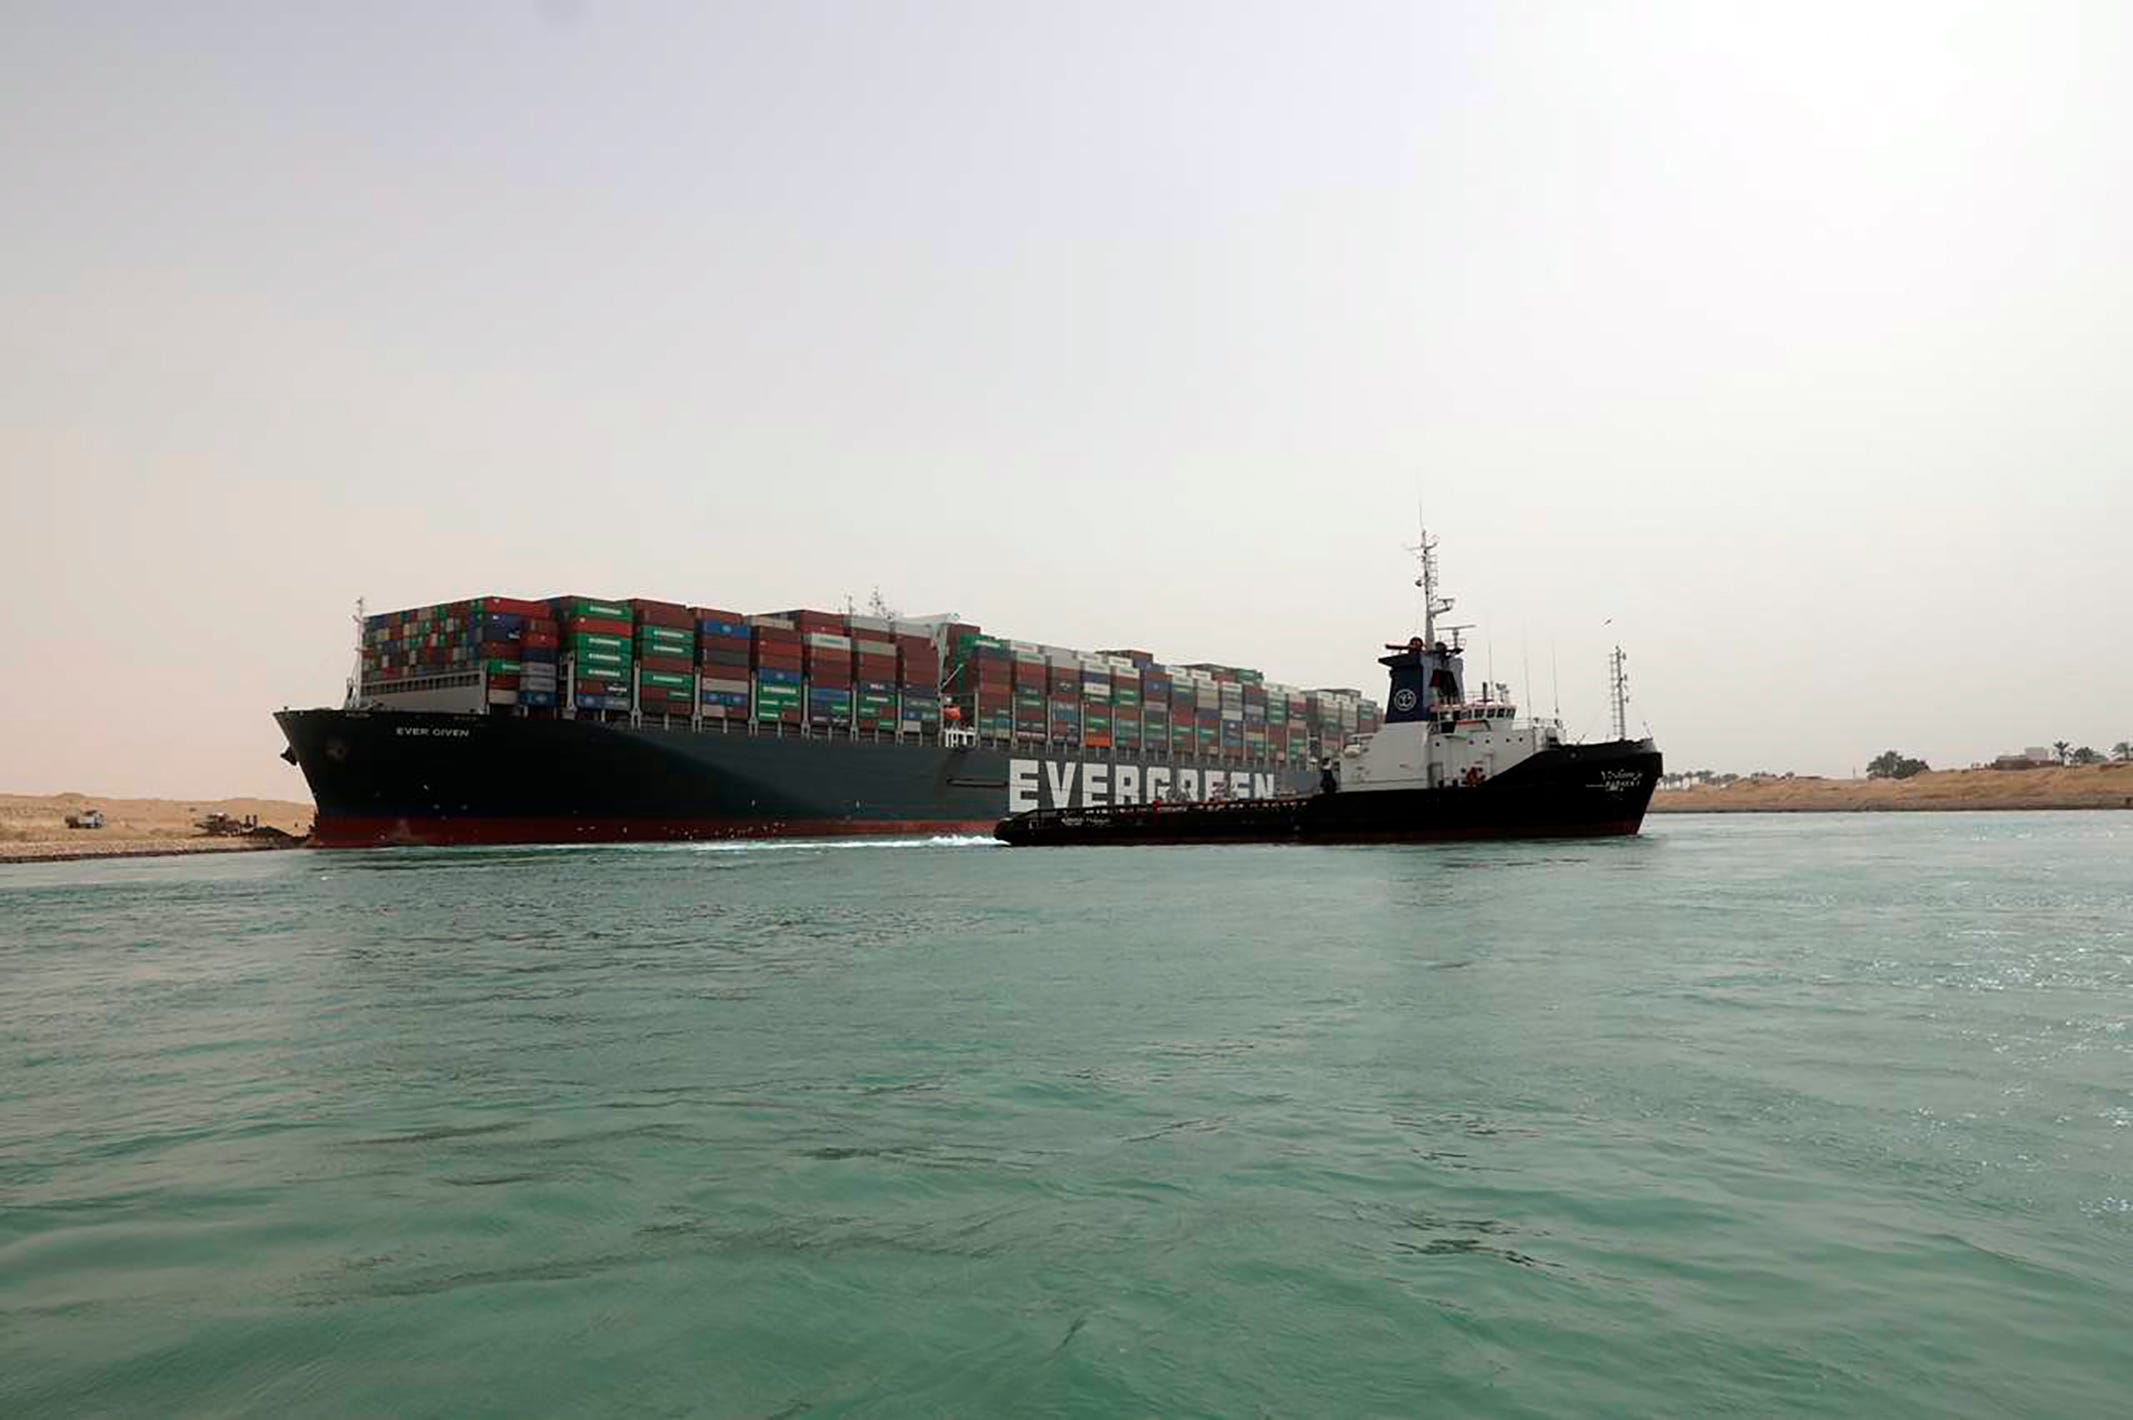 Day 3 and the Suez Canal remains blocked; at least 237 ships wait for canal to be cleared